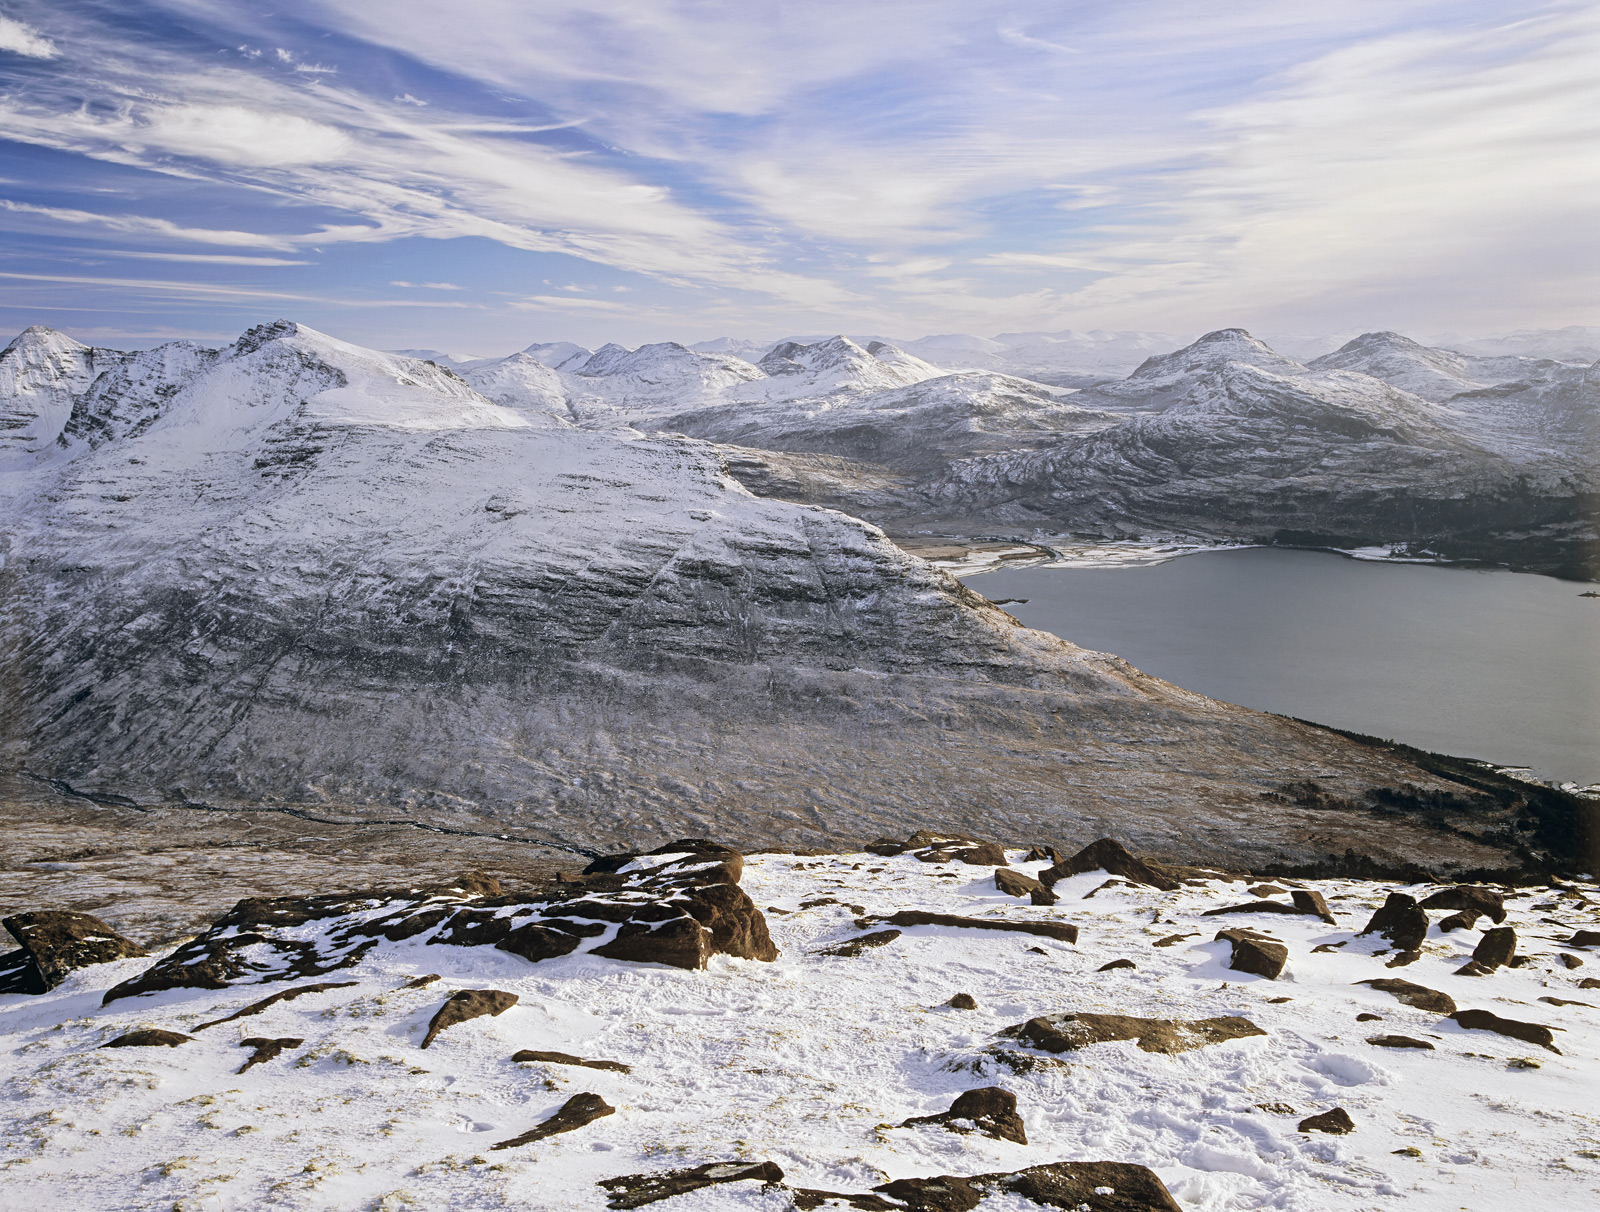 The night before I was treated to this spectacular view I was staying on the summit of TomNa Gruigach in the high Torridon...